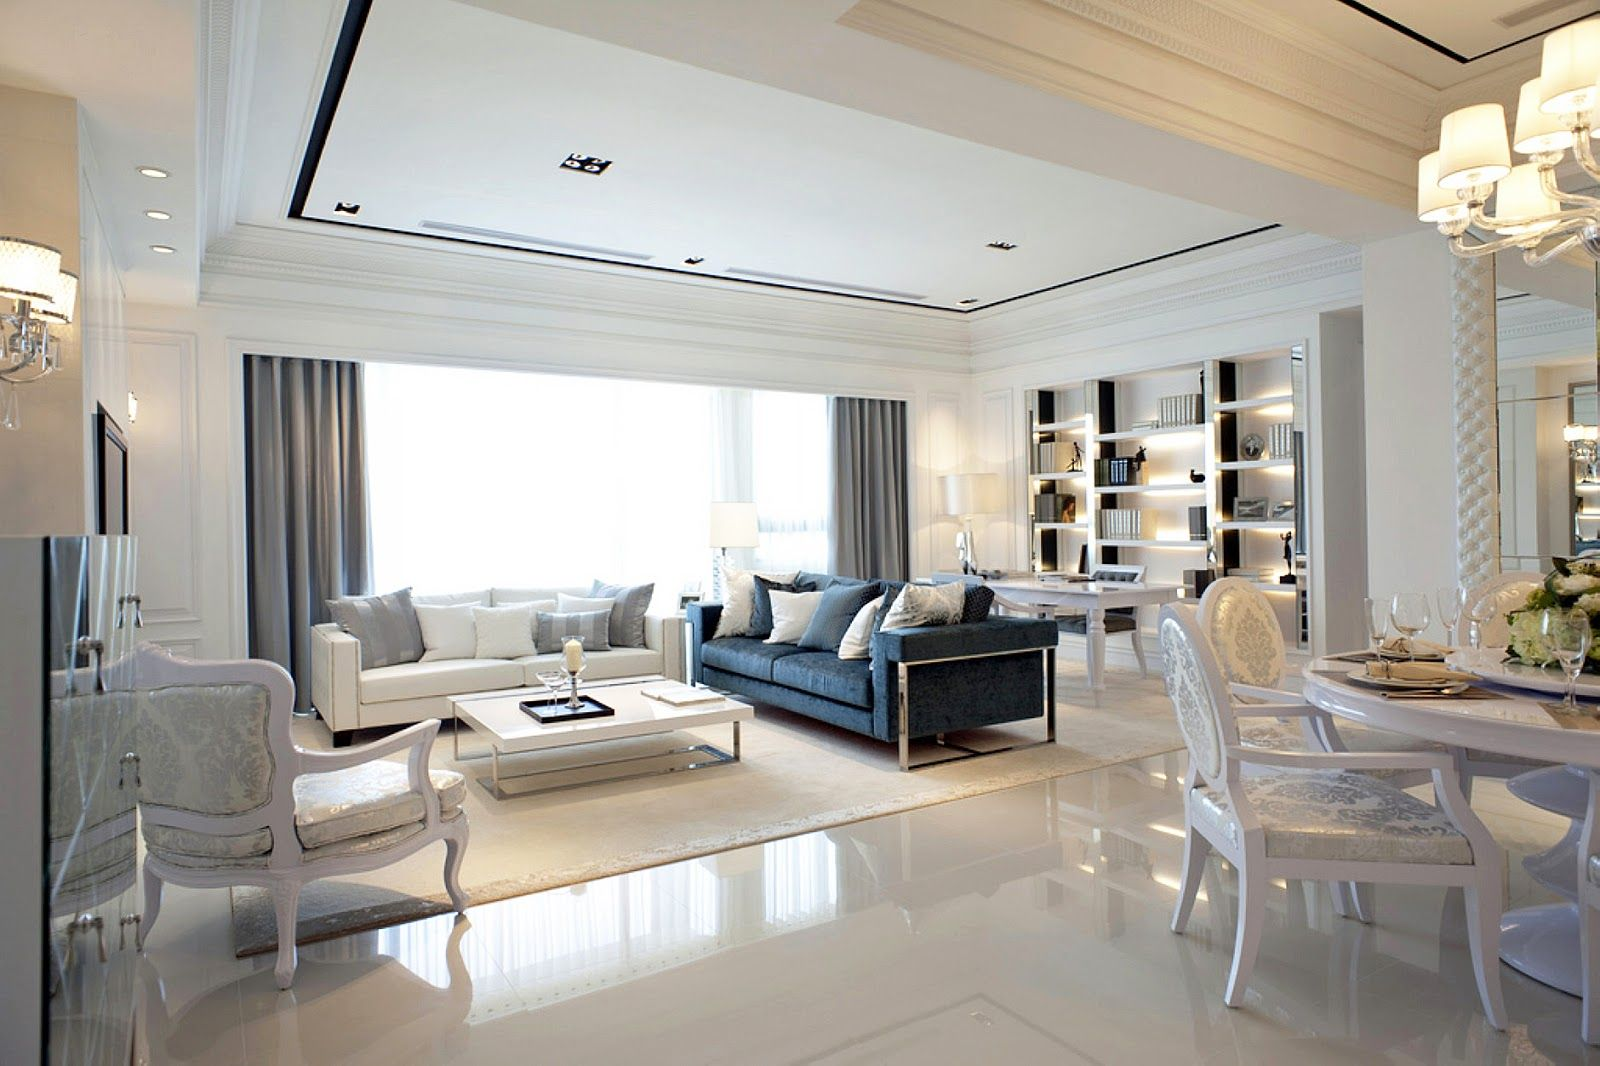 Glam Interior Design taiwan penthouse condo decor: white and grey decor | food and